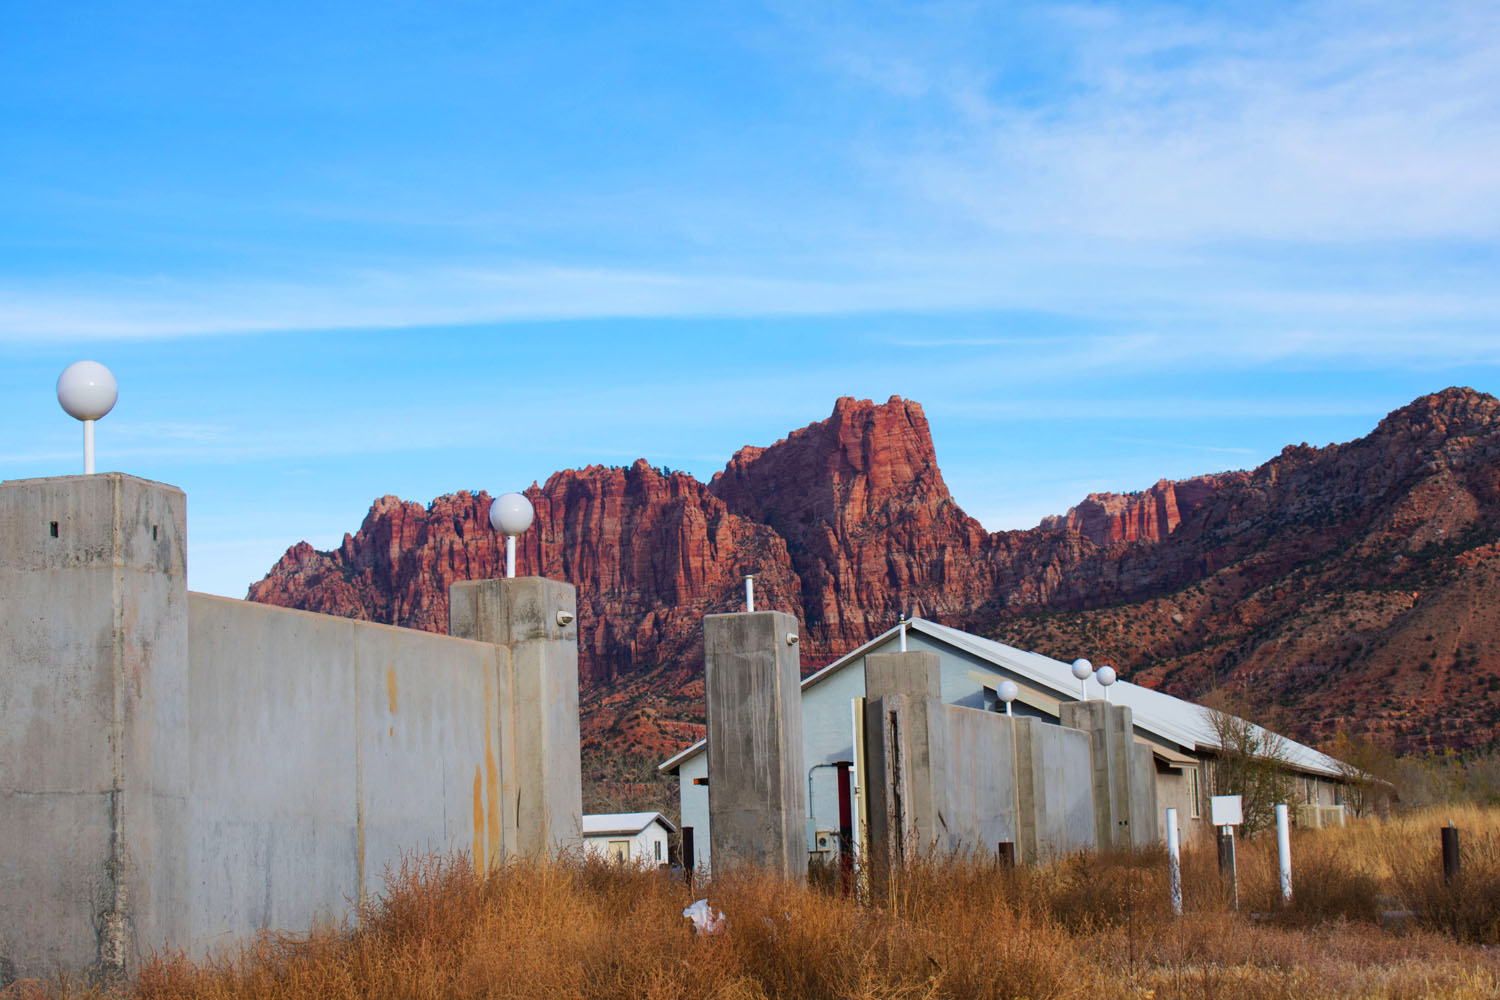 The former site of the FLDS bishop's storehouse. Photo by Barak Wright.